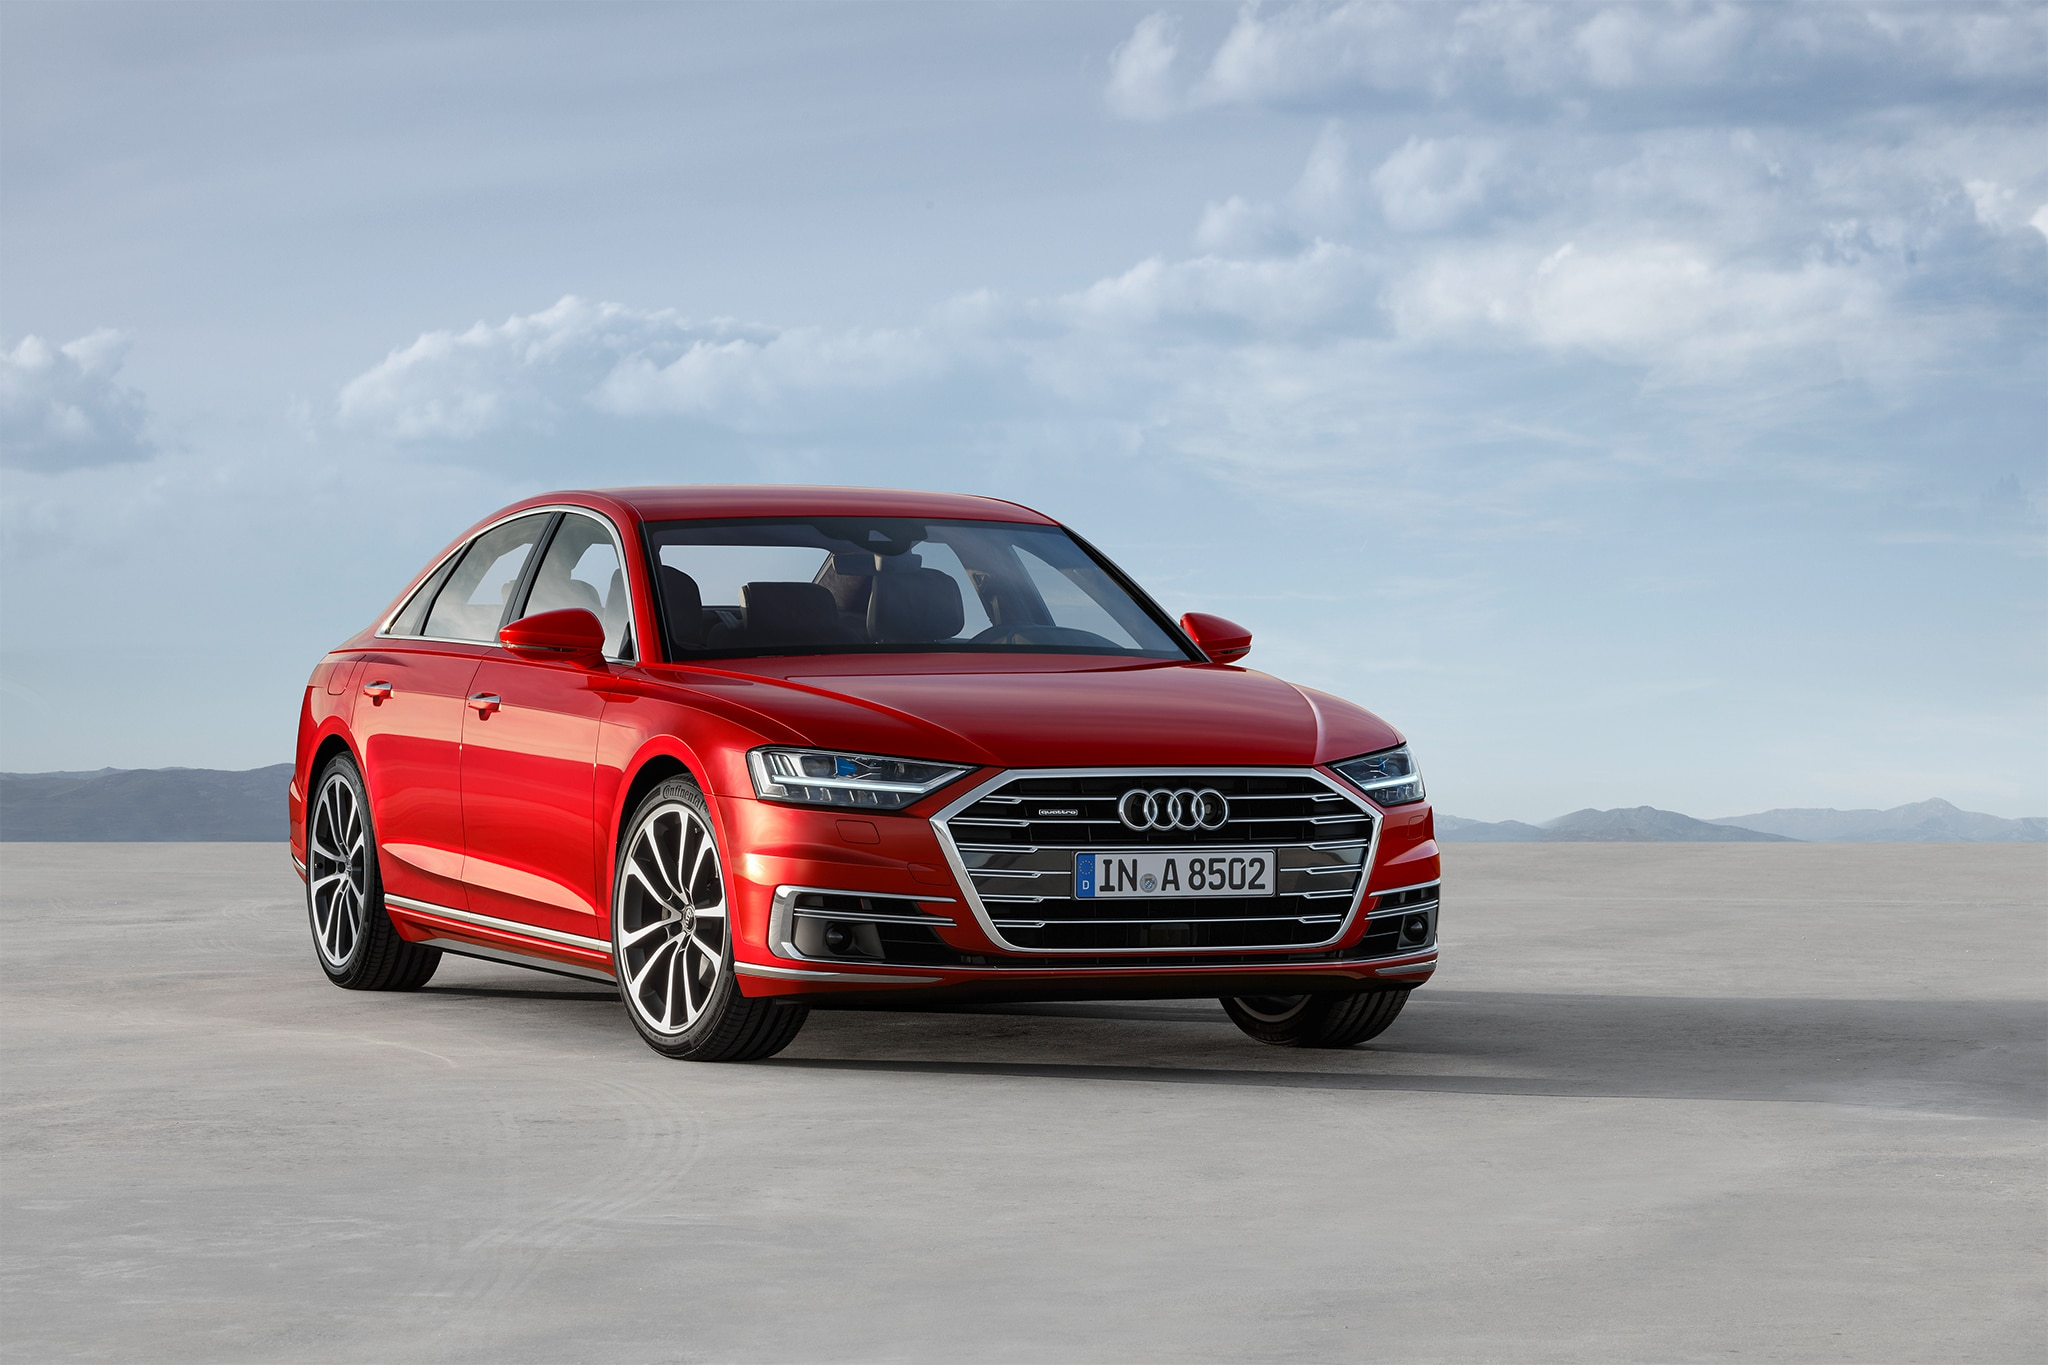 2019 Audi A8 Front Three Quarter 03